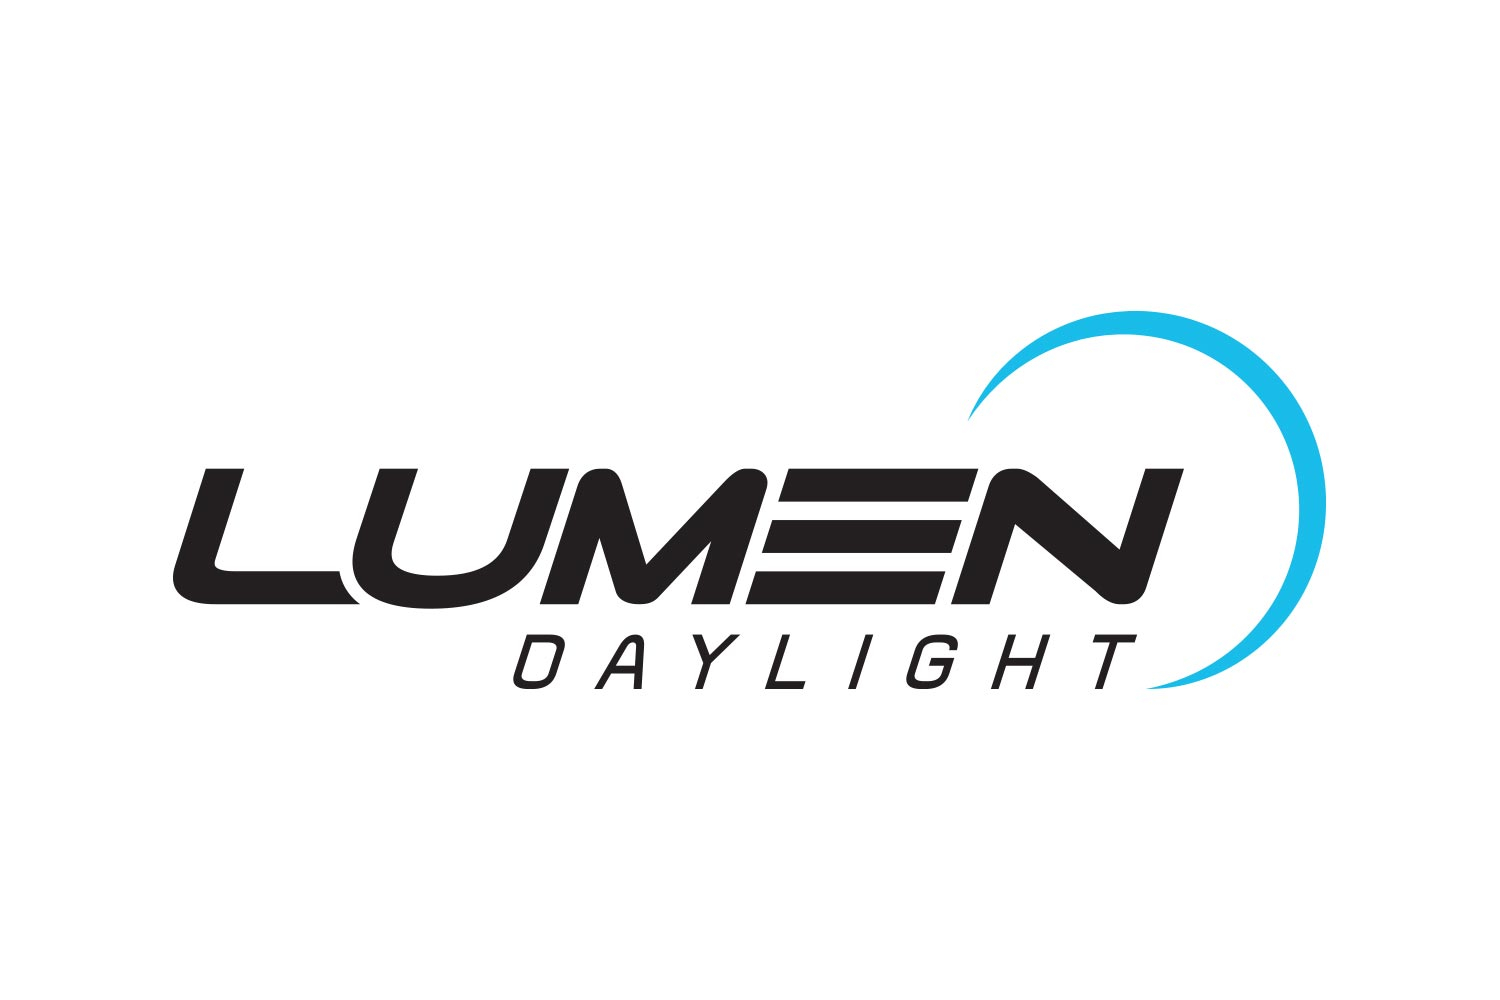 Lumen Cyclops Square LED extraljus